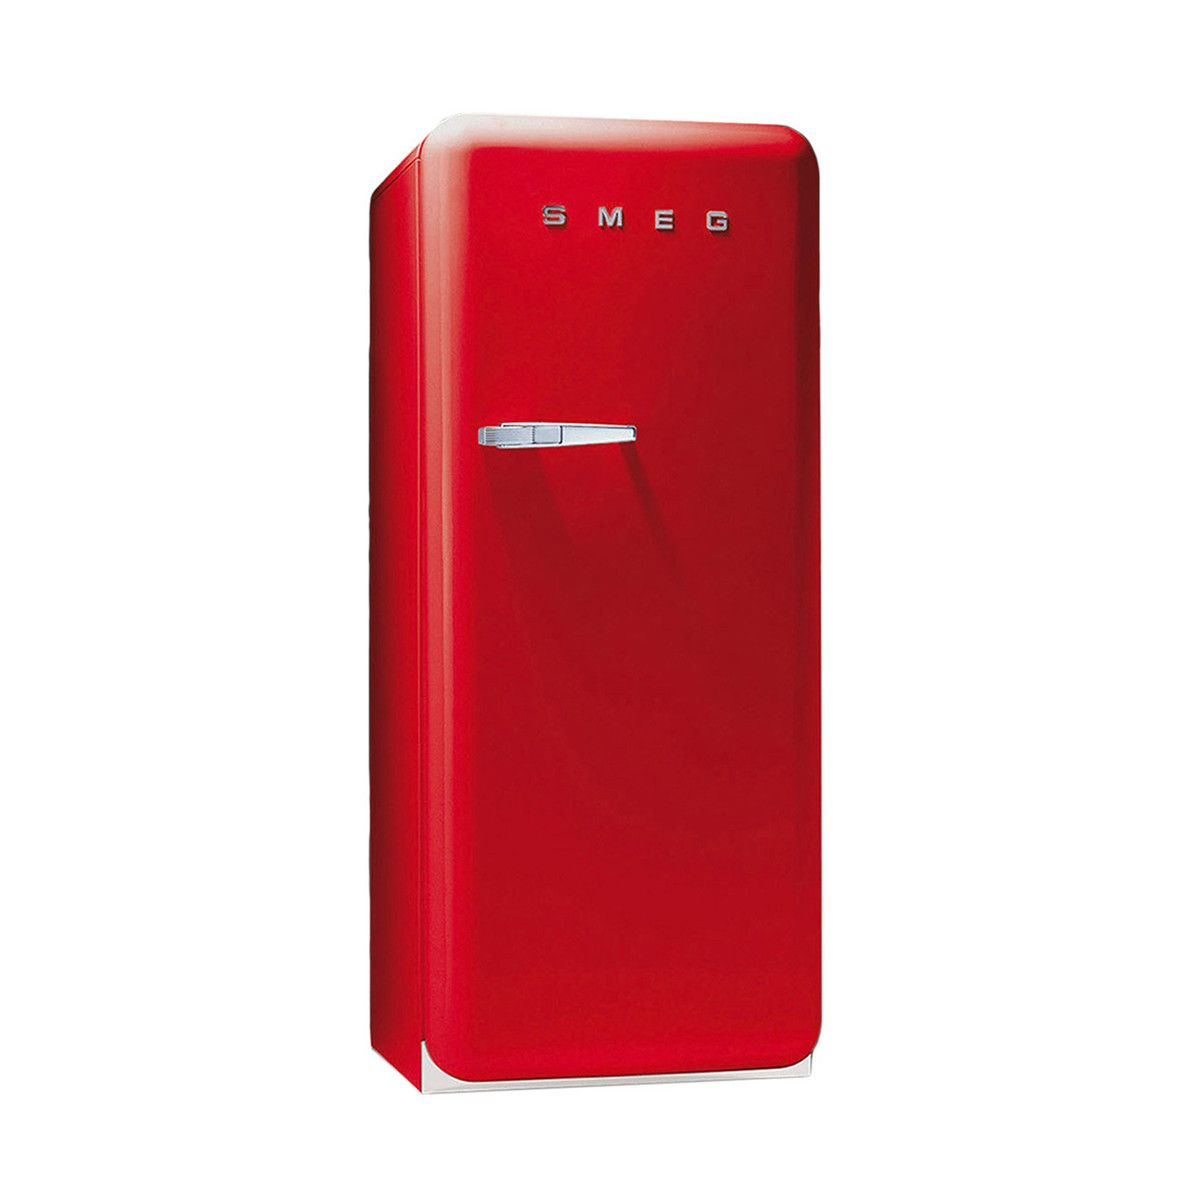 Totally Dig This As A Secondary Fridge Fab Com Retro Fridge Red Retro Fridge Red Fridge Design